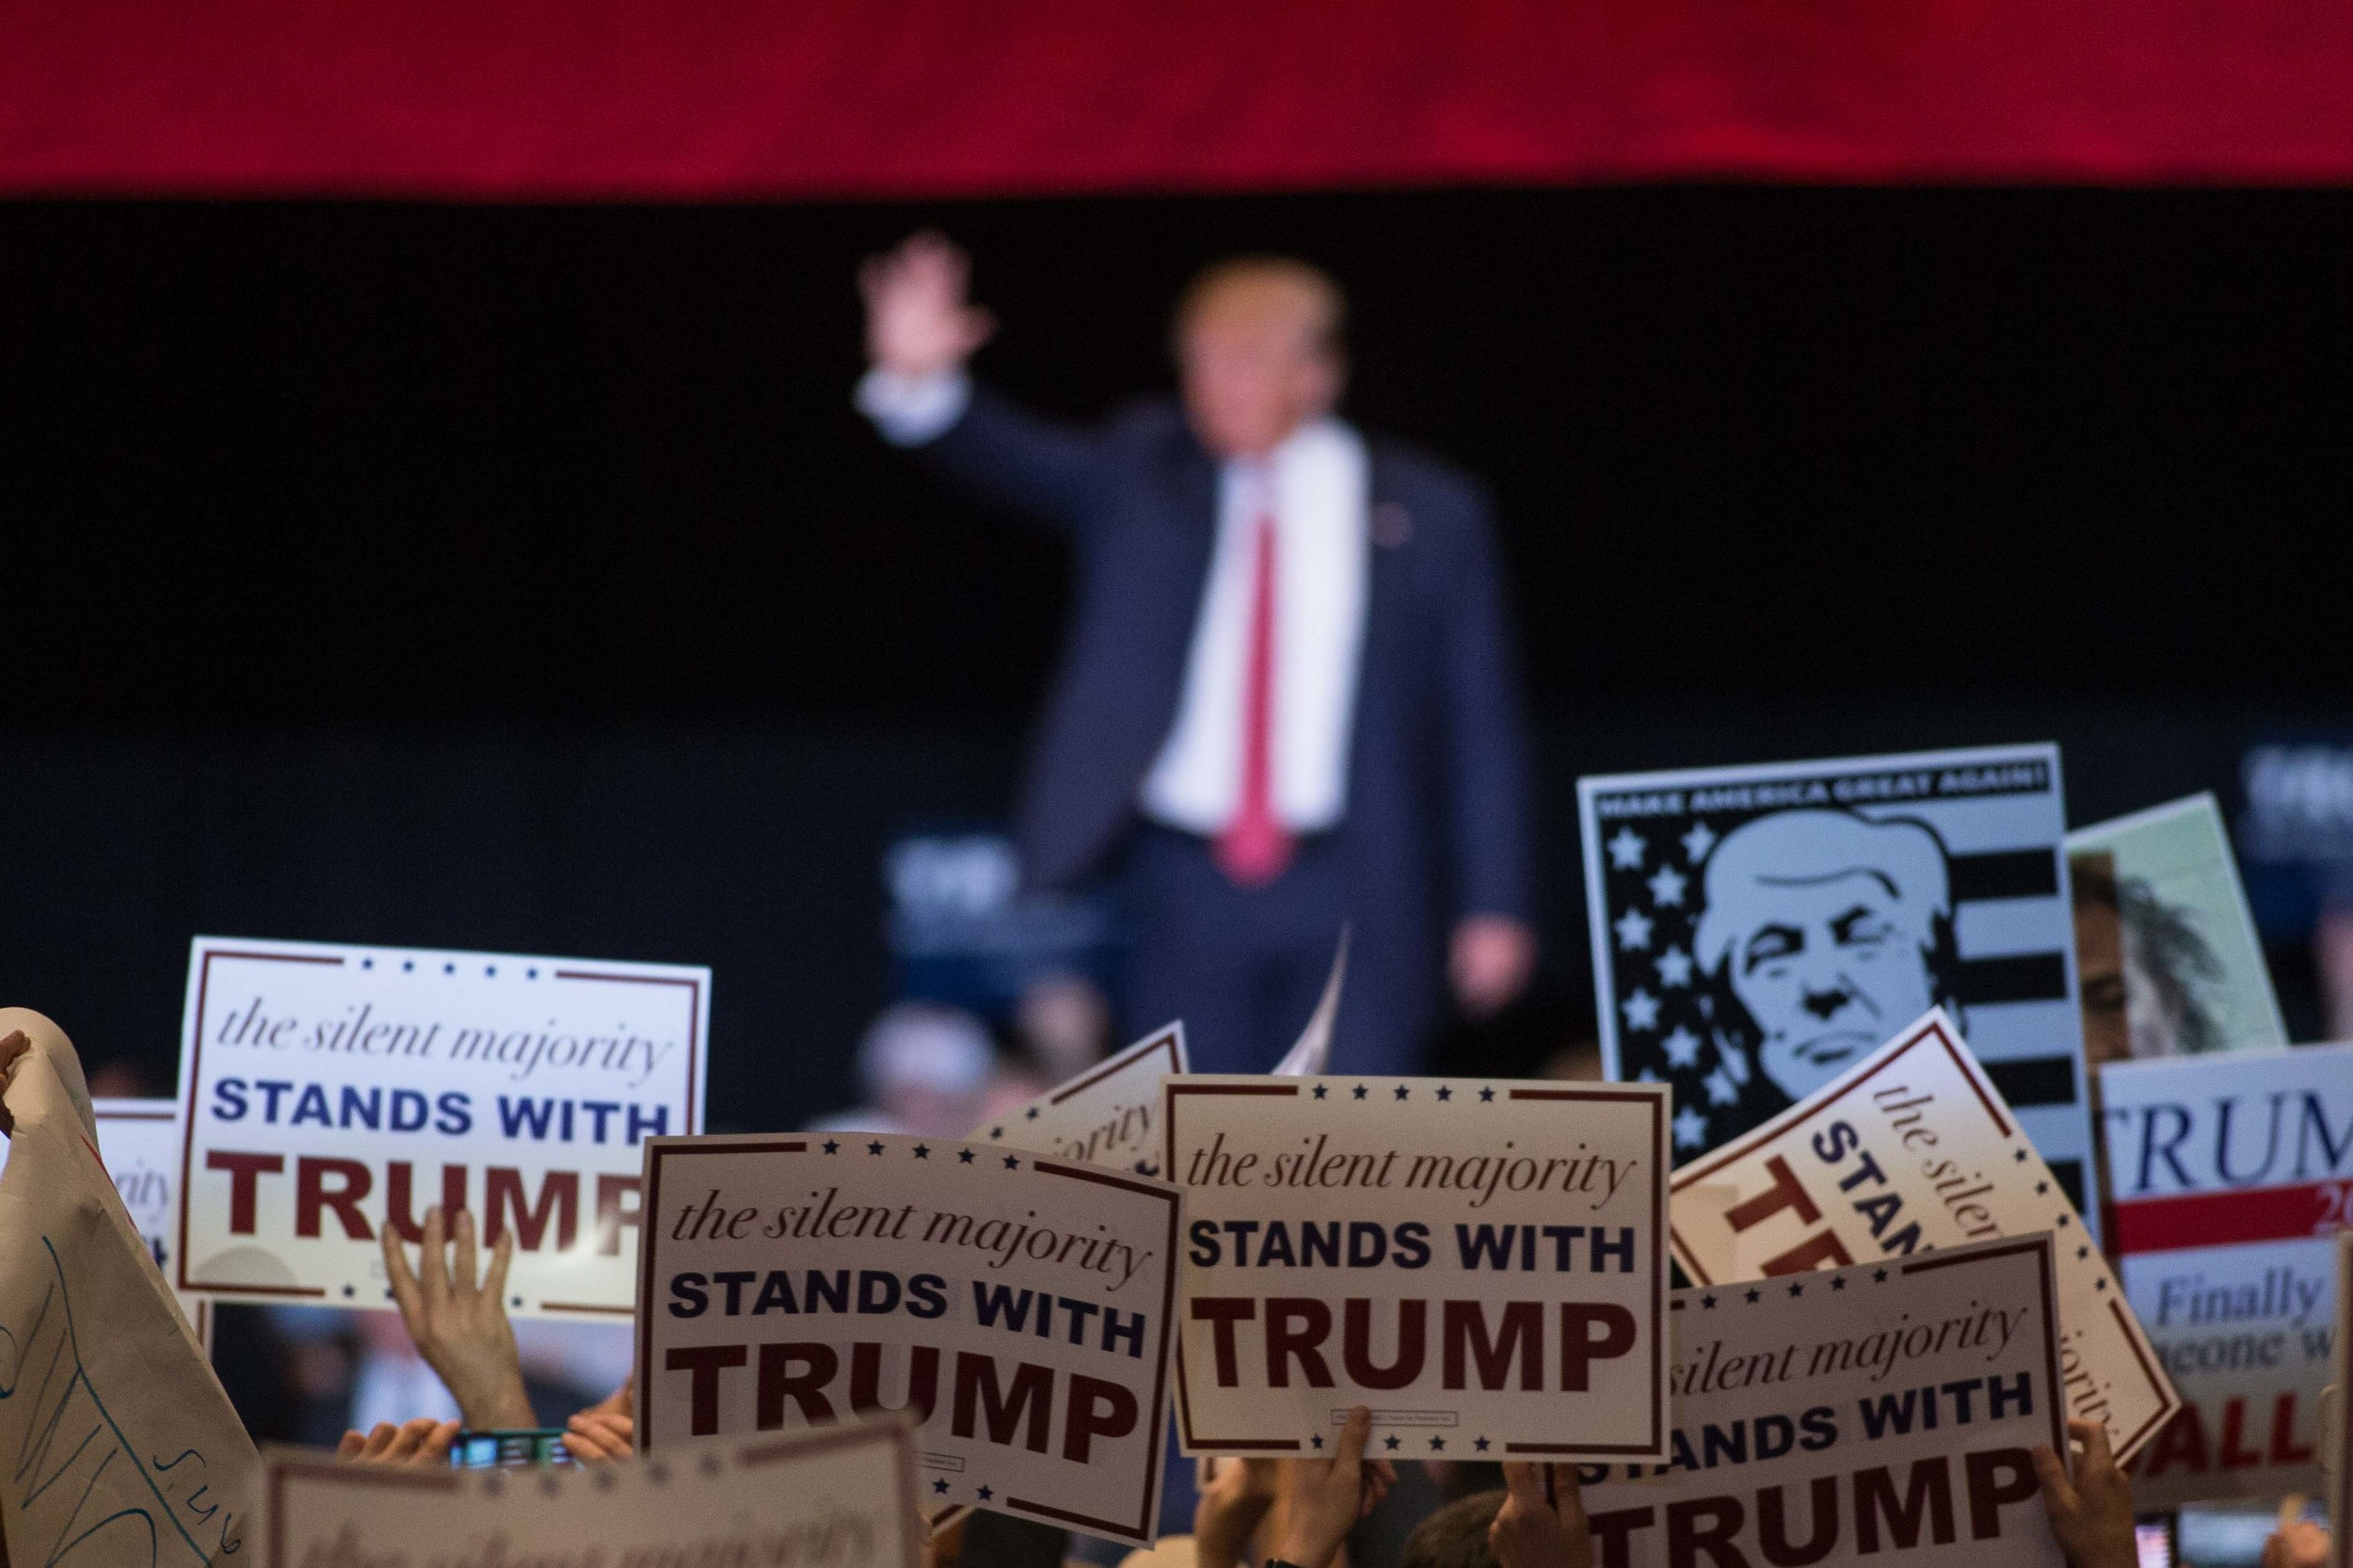 People hold up signs as Republican presidential candidate Donald Trump walks on stage during a campaign rally at the Macon Centreplex, Monday, Nov. 30, 2015, in Macon, Ga. (AP Photo/Branden Camp)